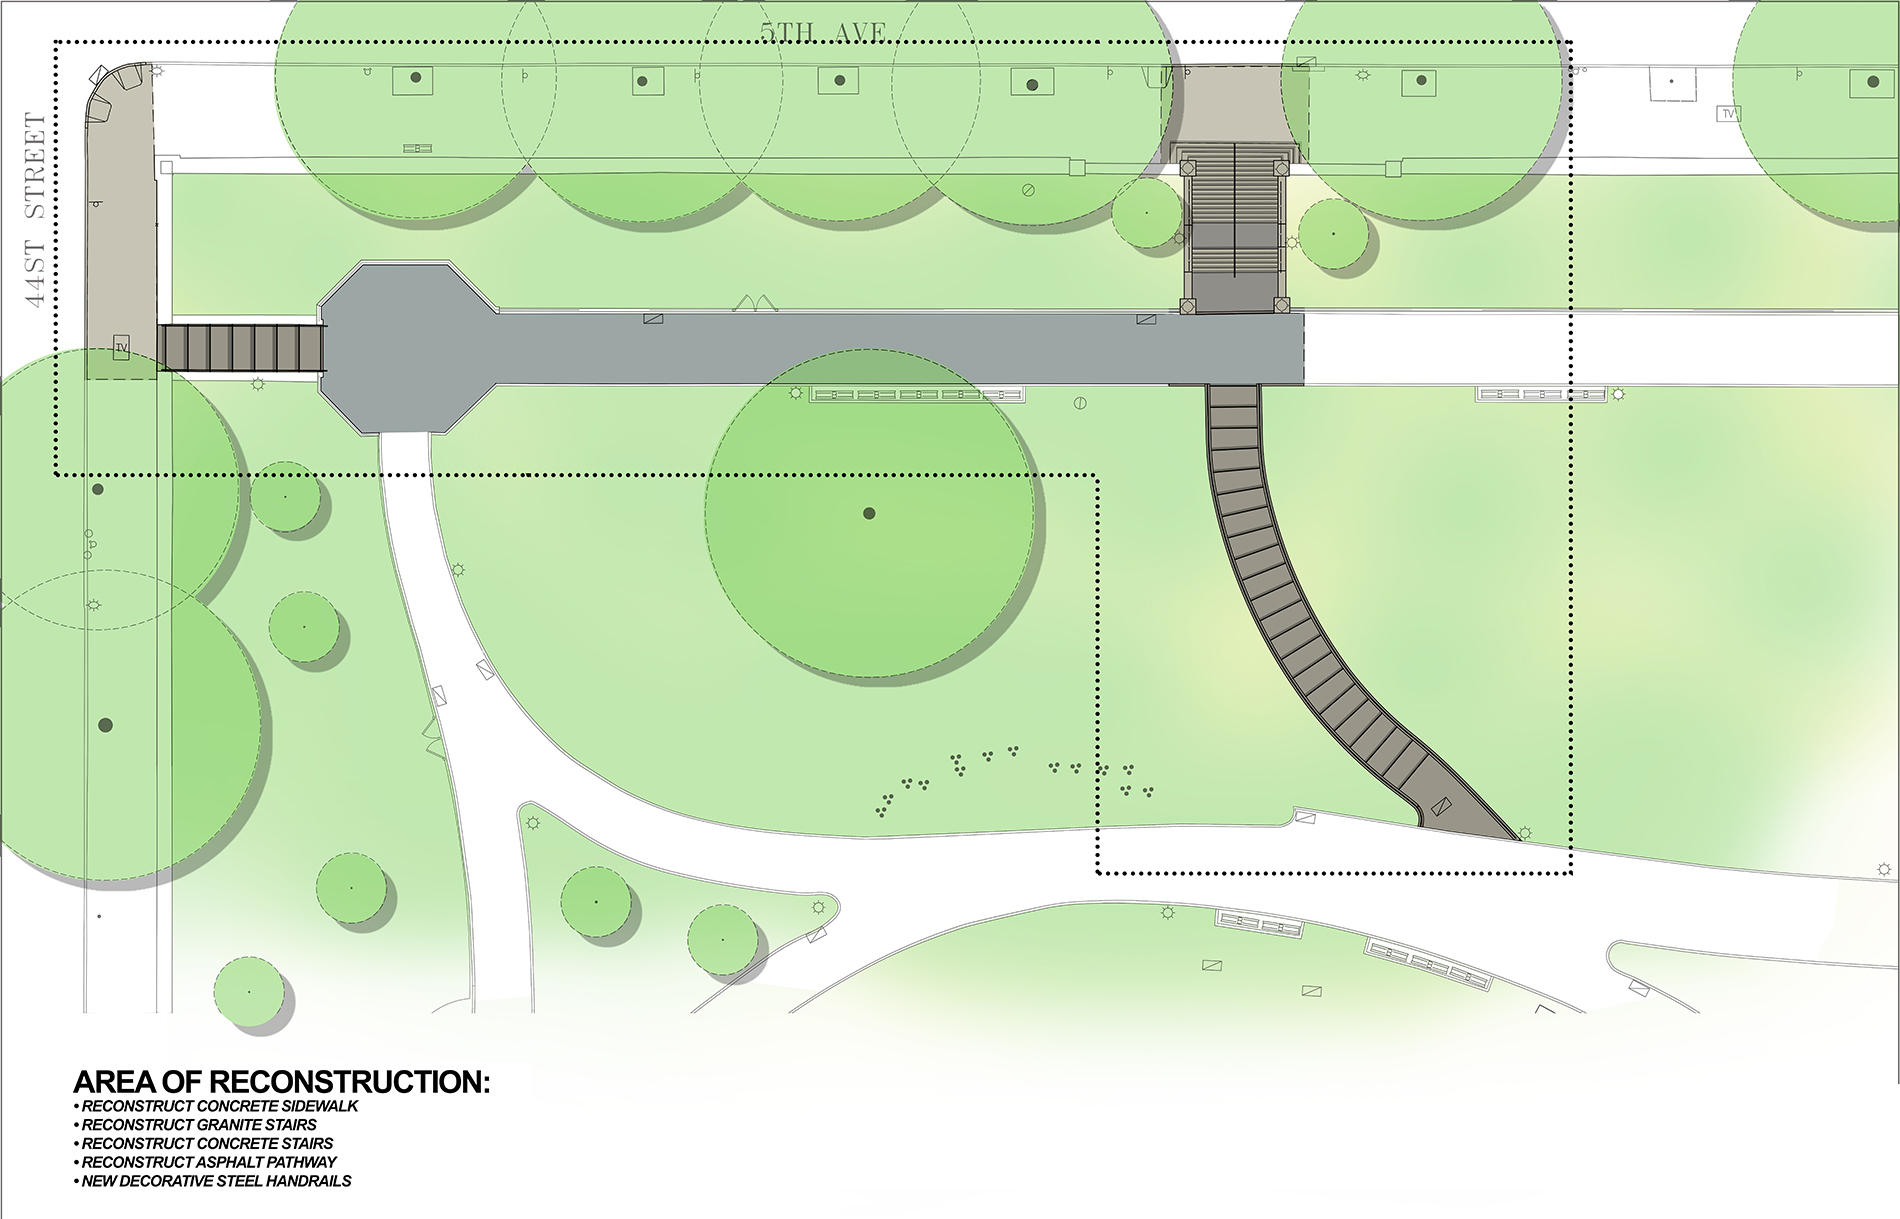 Design of Sunset Park Path Reconstruction